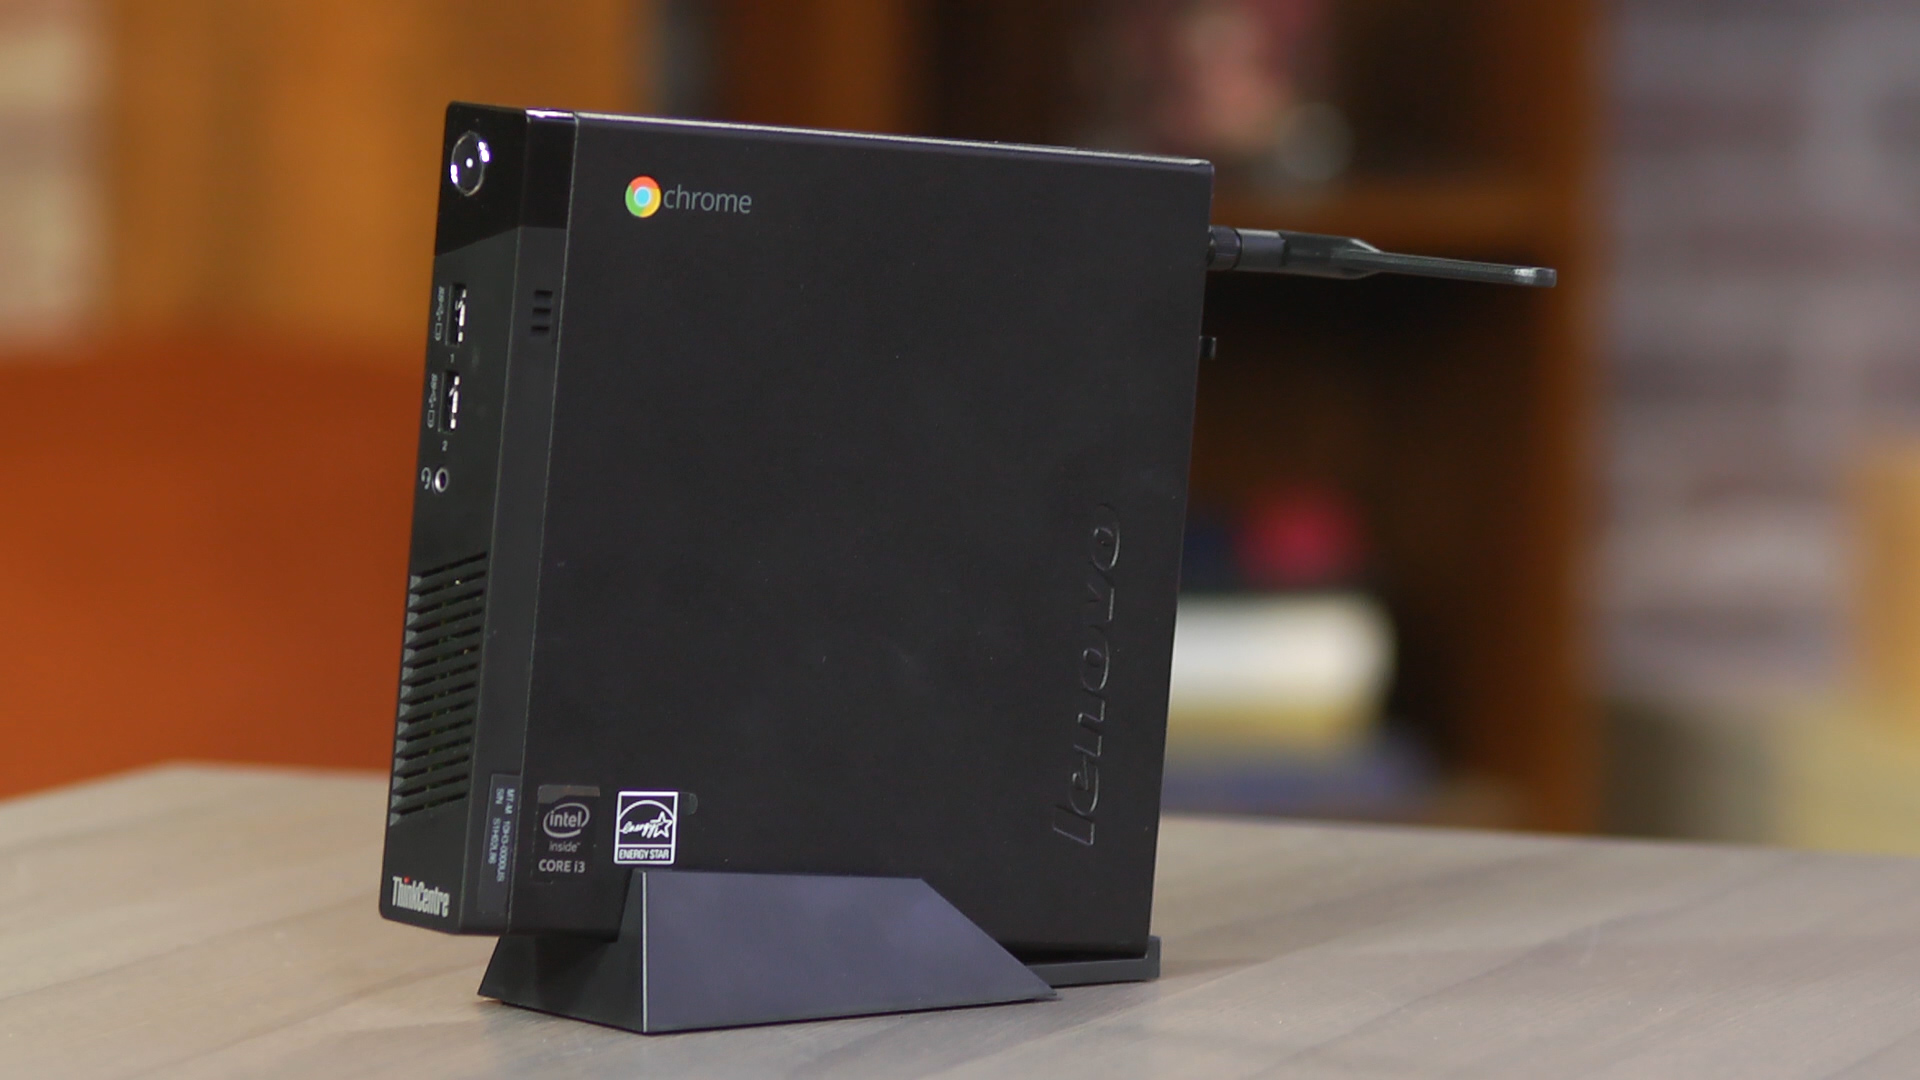 Video: The Lenovo ThinkCentre Chromebox puts Chrome OS on your desk